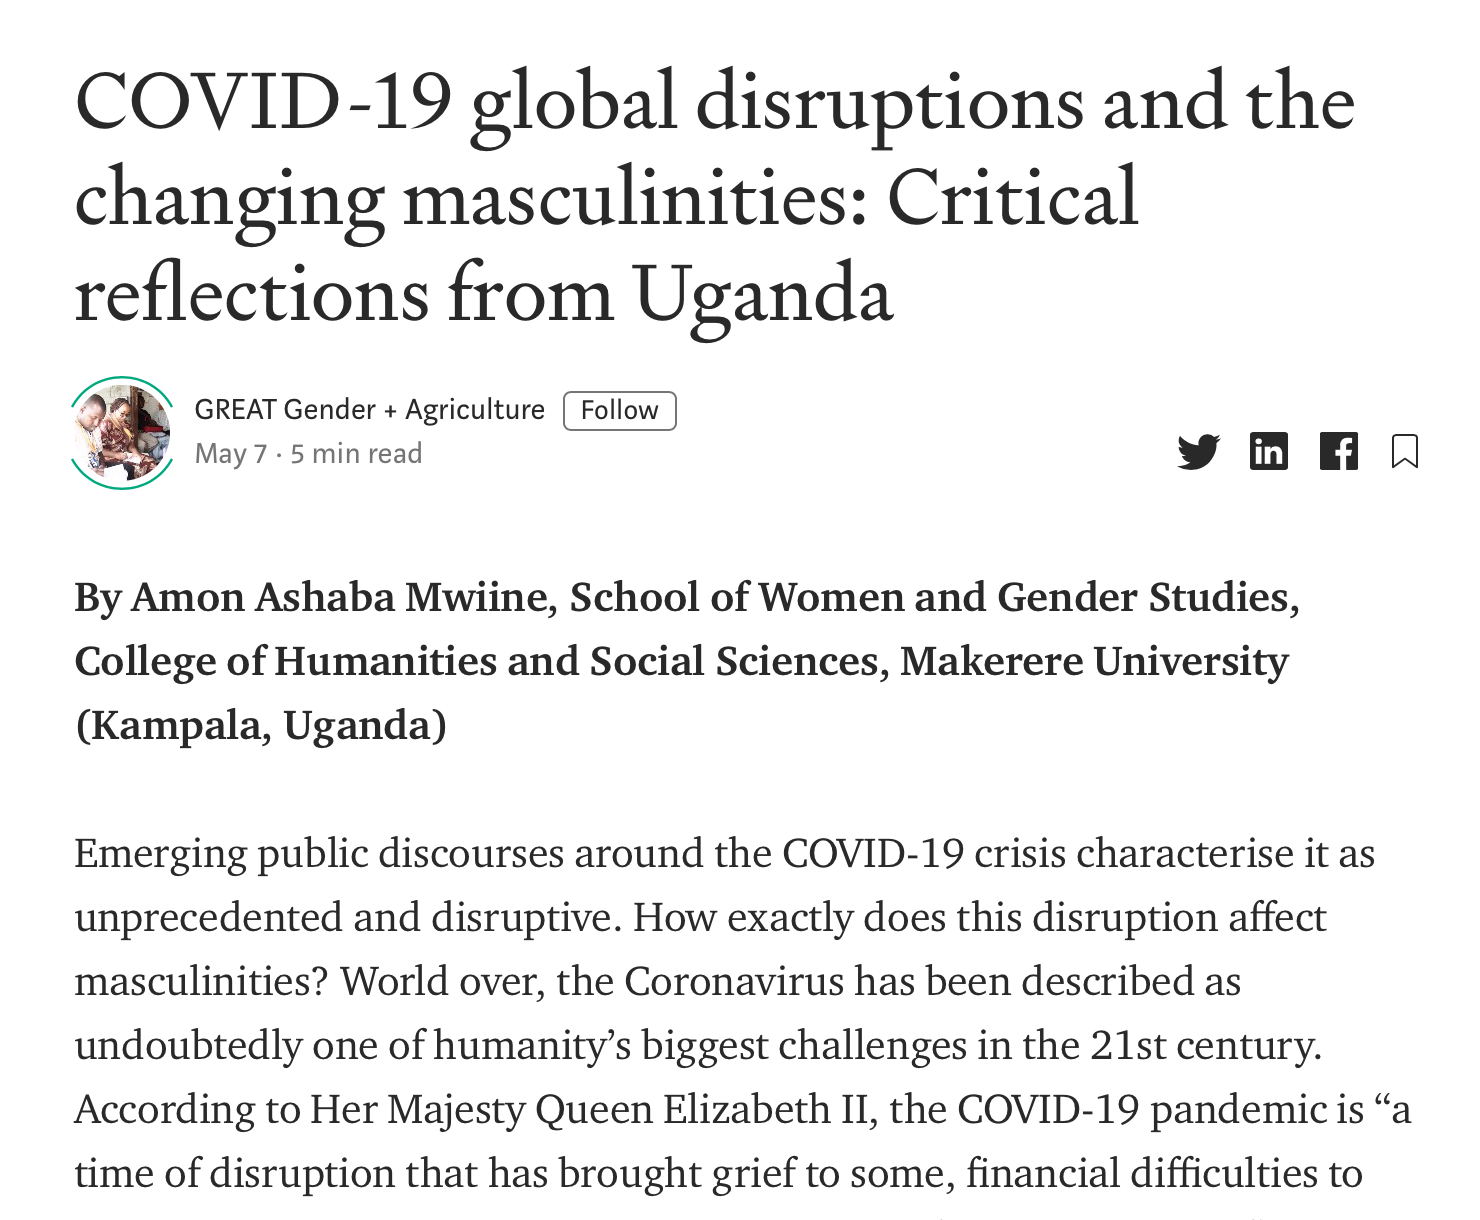 COVID-19 global disruptions and the changing masculinities-Critical reflections from Uganda